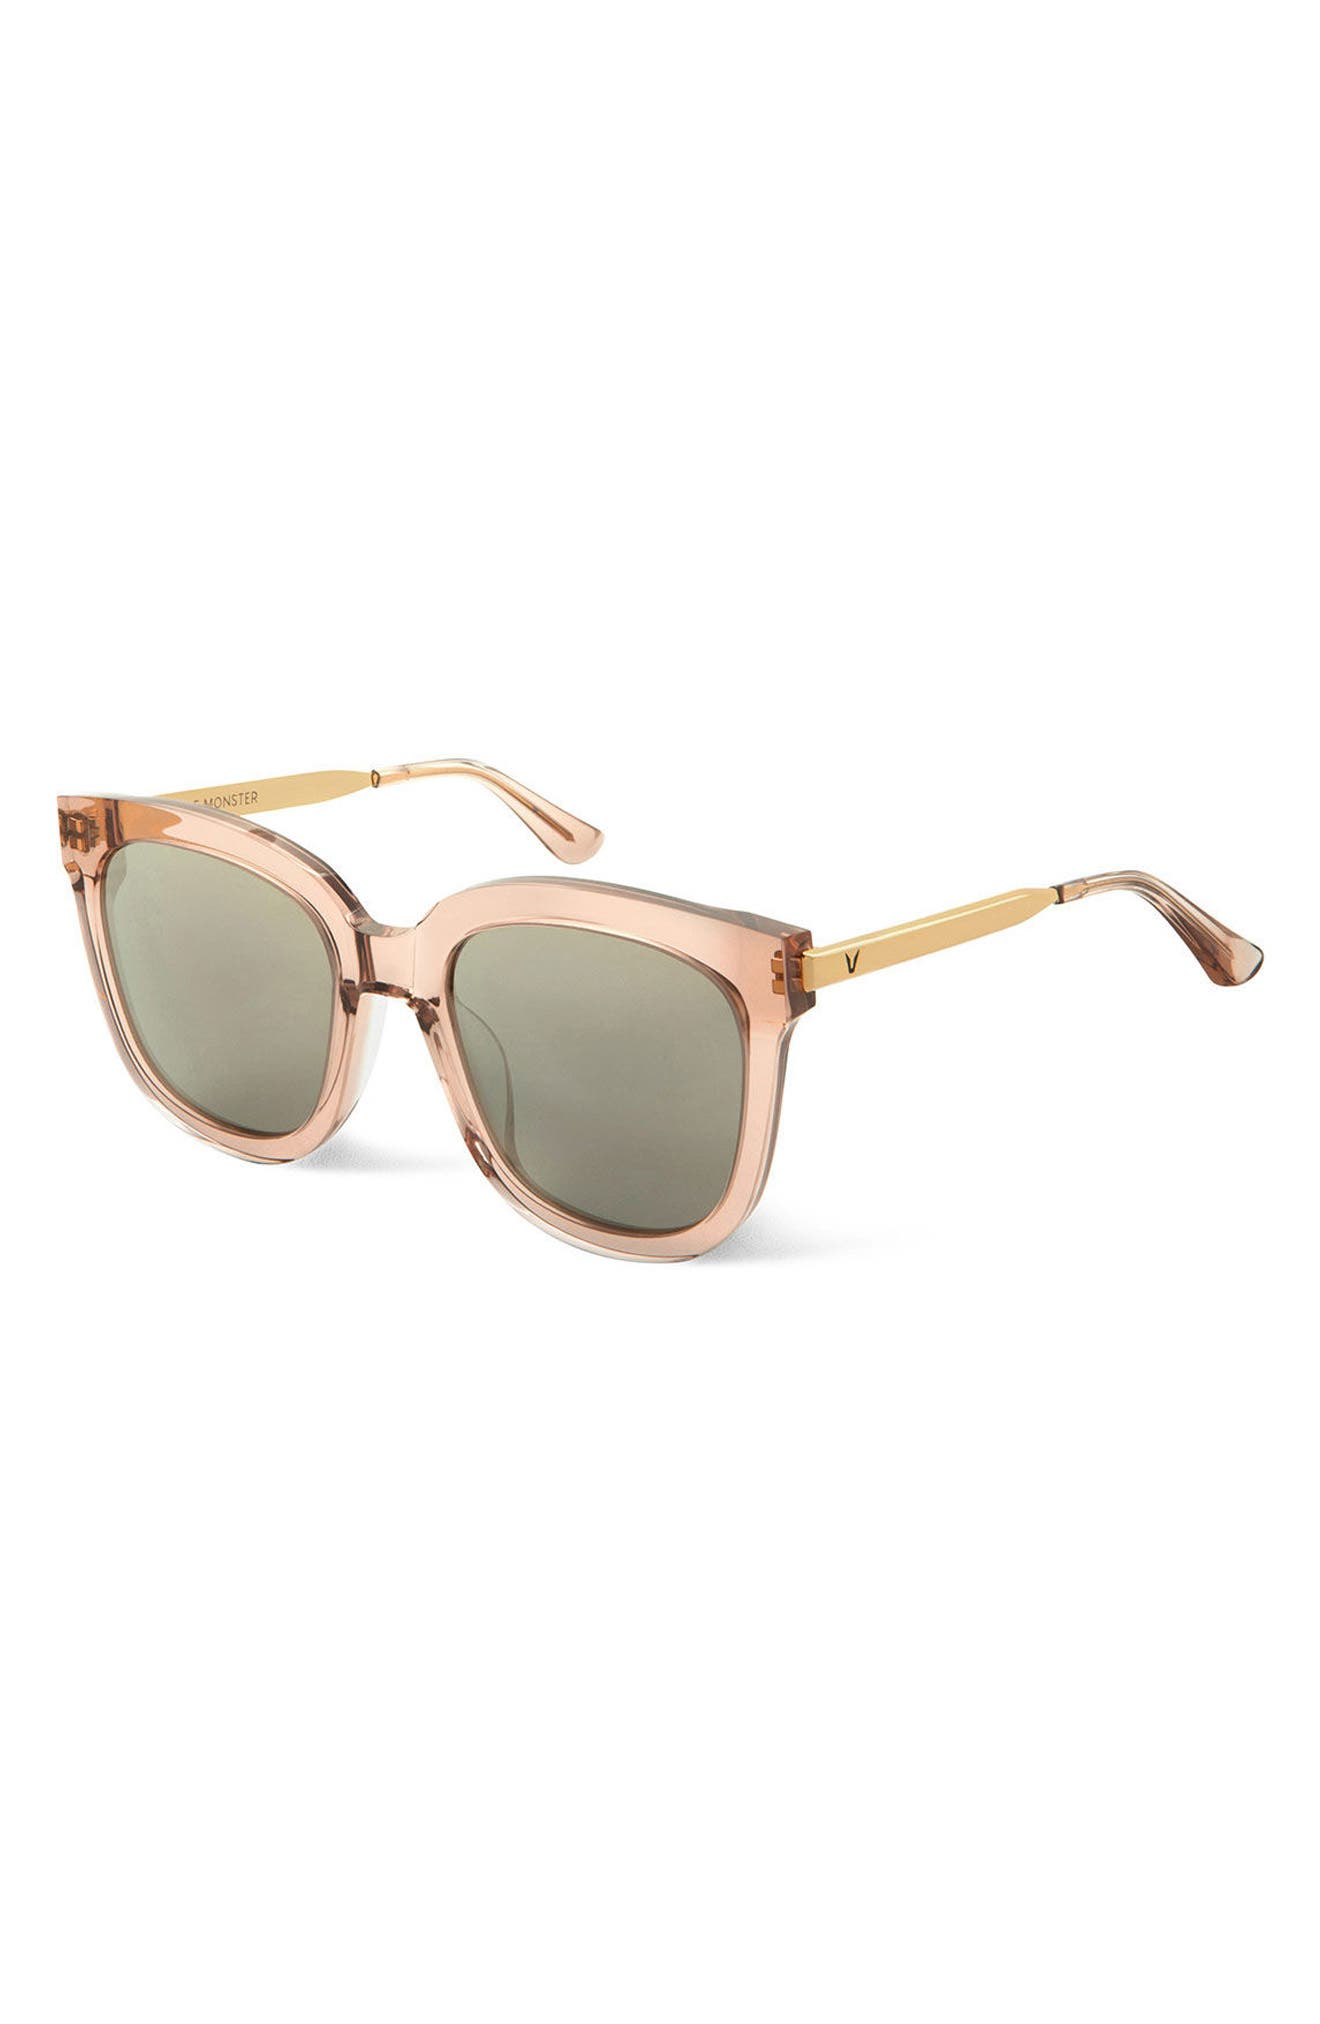 Absente 54mm Sunglasses,                             Alternate thumbnail 18, color,